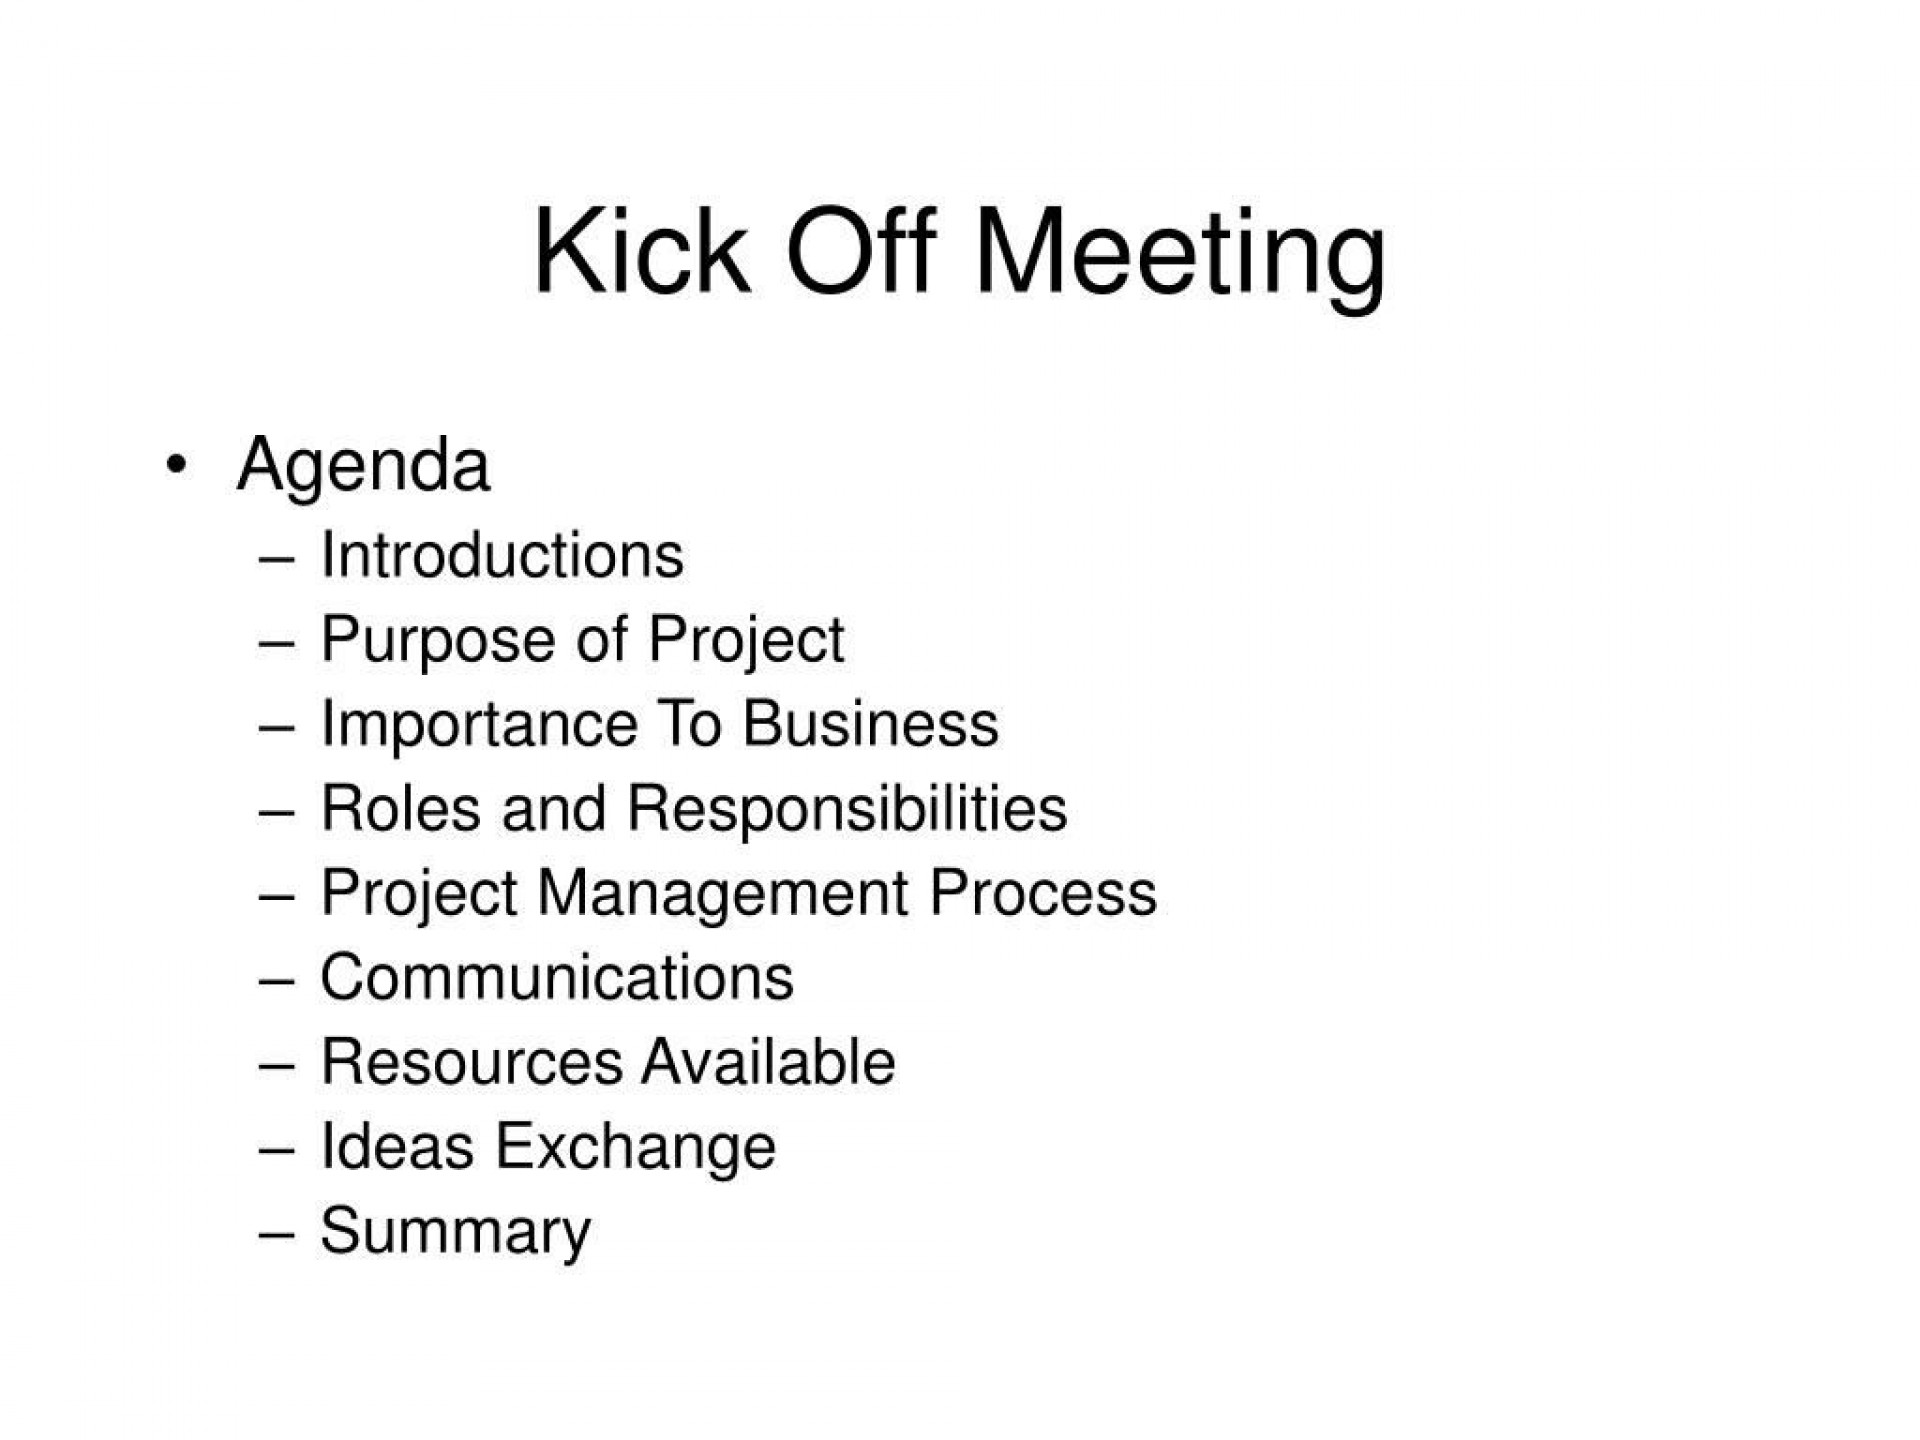 005 Breathtaking Project Management Kickoff Meeting Template Ppt Concept 1920